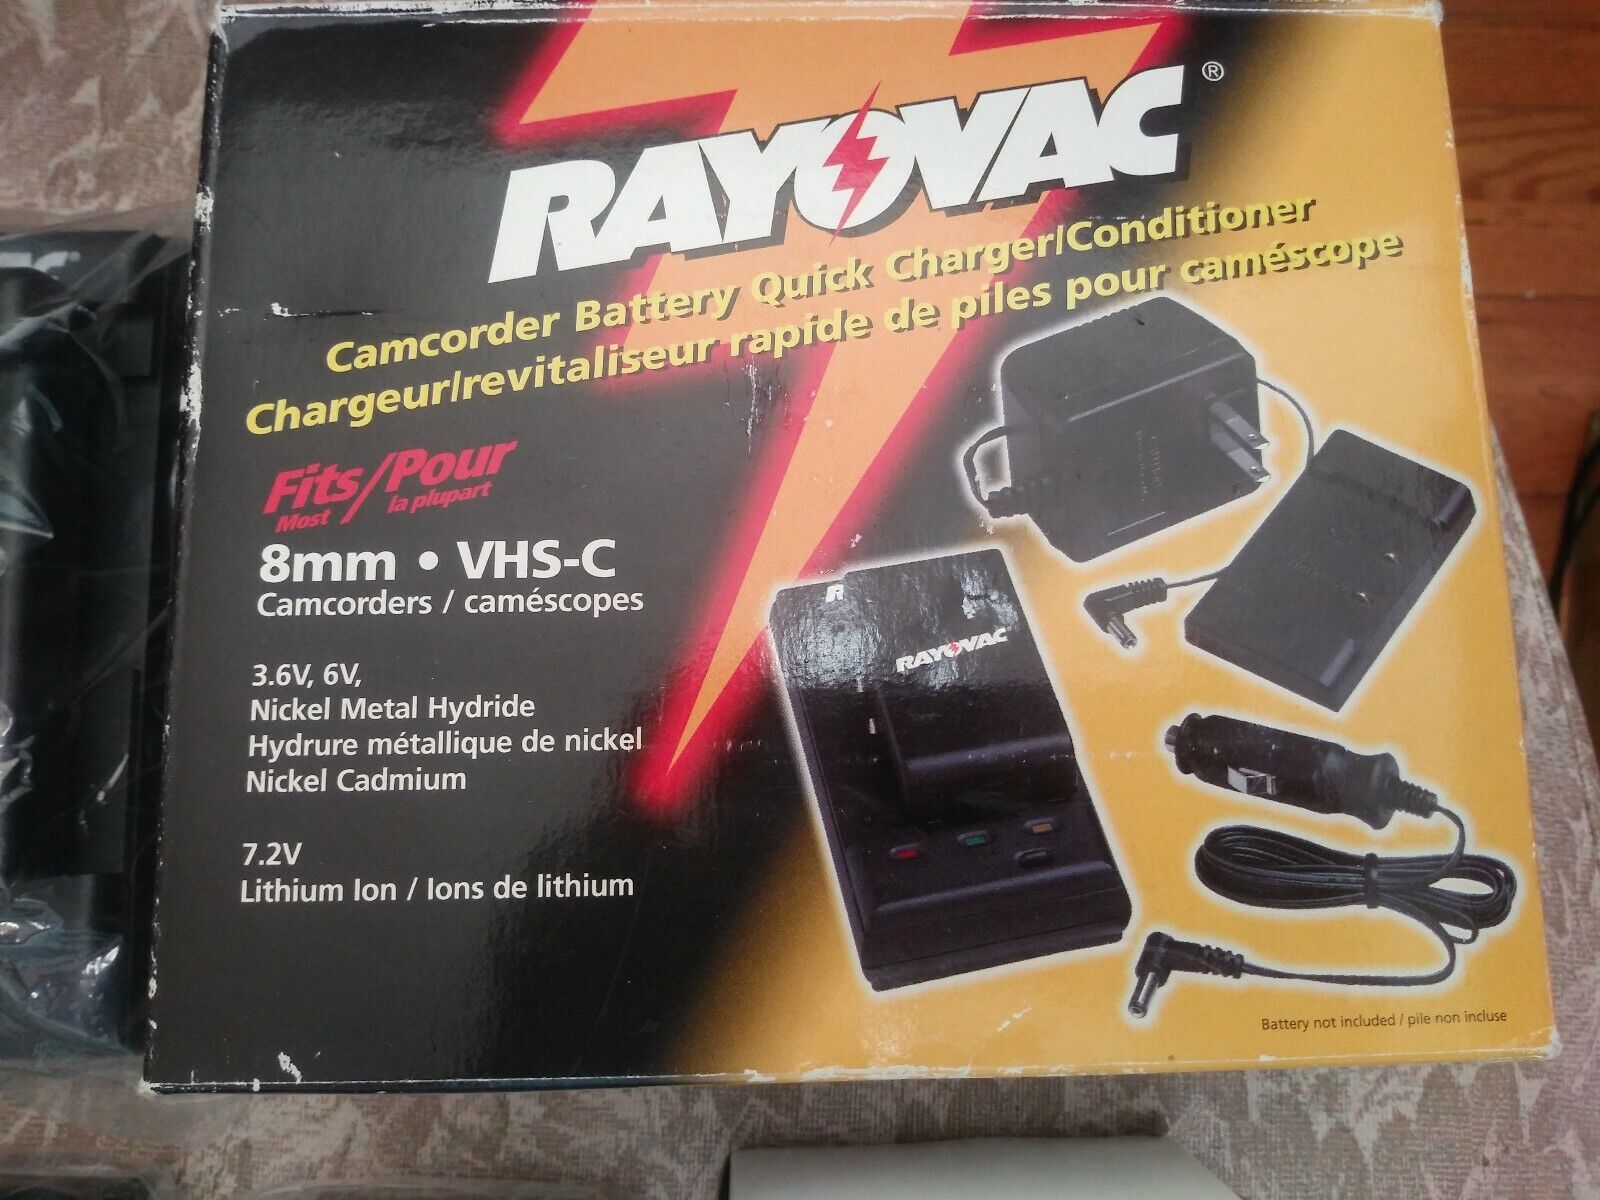 NEW Rayovac Camcorder Battery Quick Charger & Conditioner, AC Adaptor, Car cord,